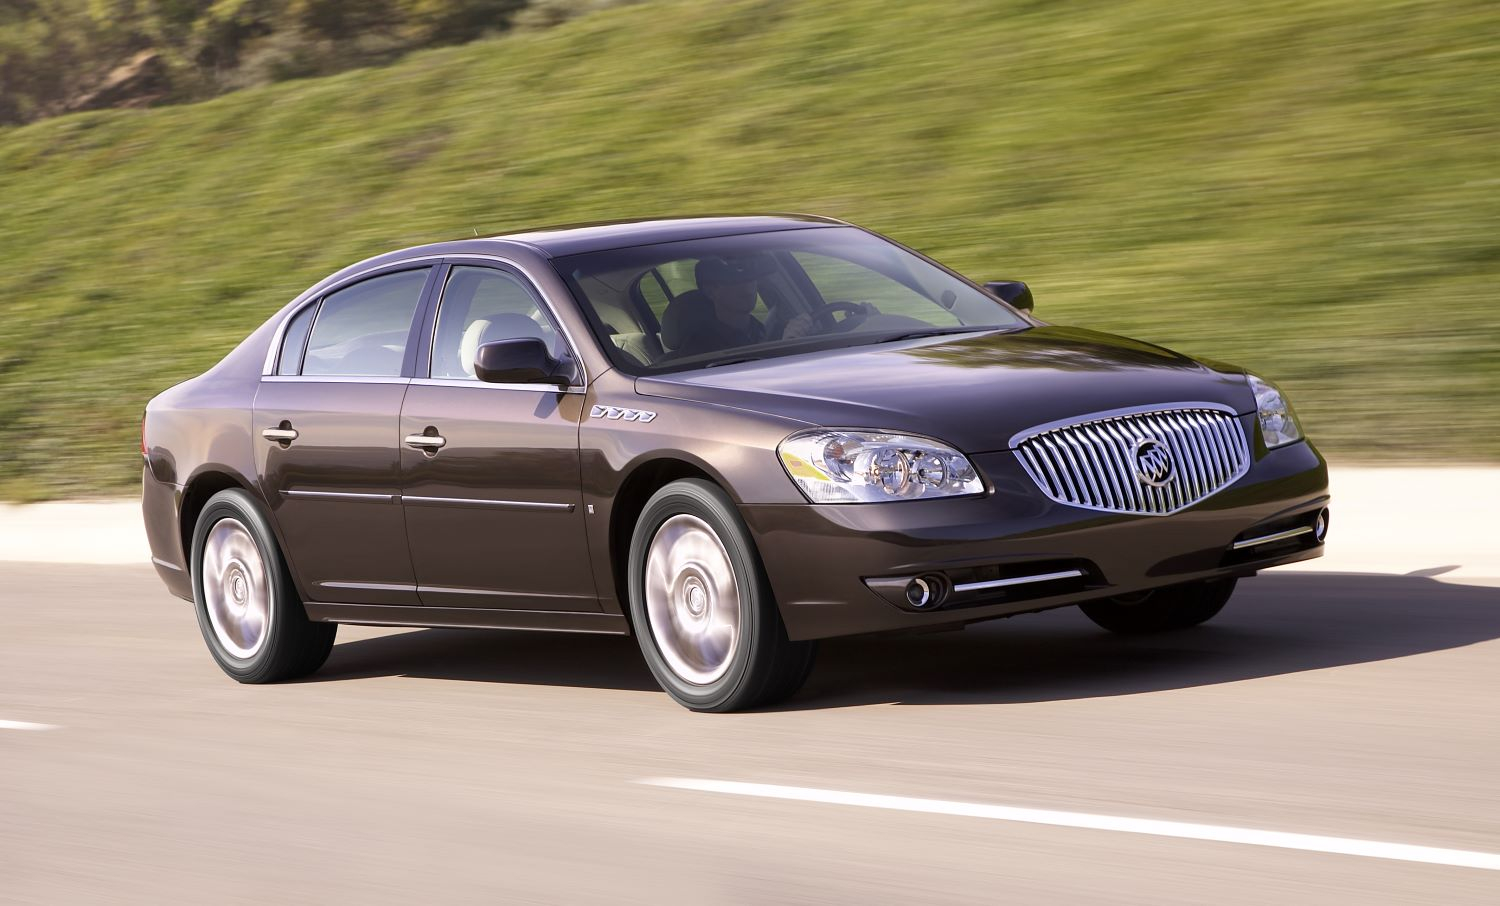 2006 Buick Lucerne Prone To Engine Problems | Gm Authority New 2022 Buick Lucerne Price, Engine, Oil